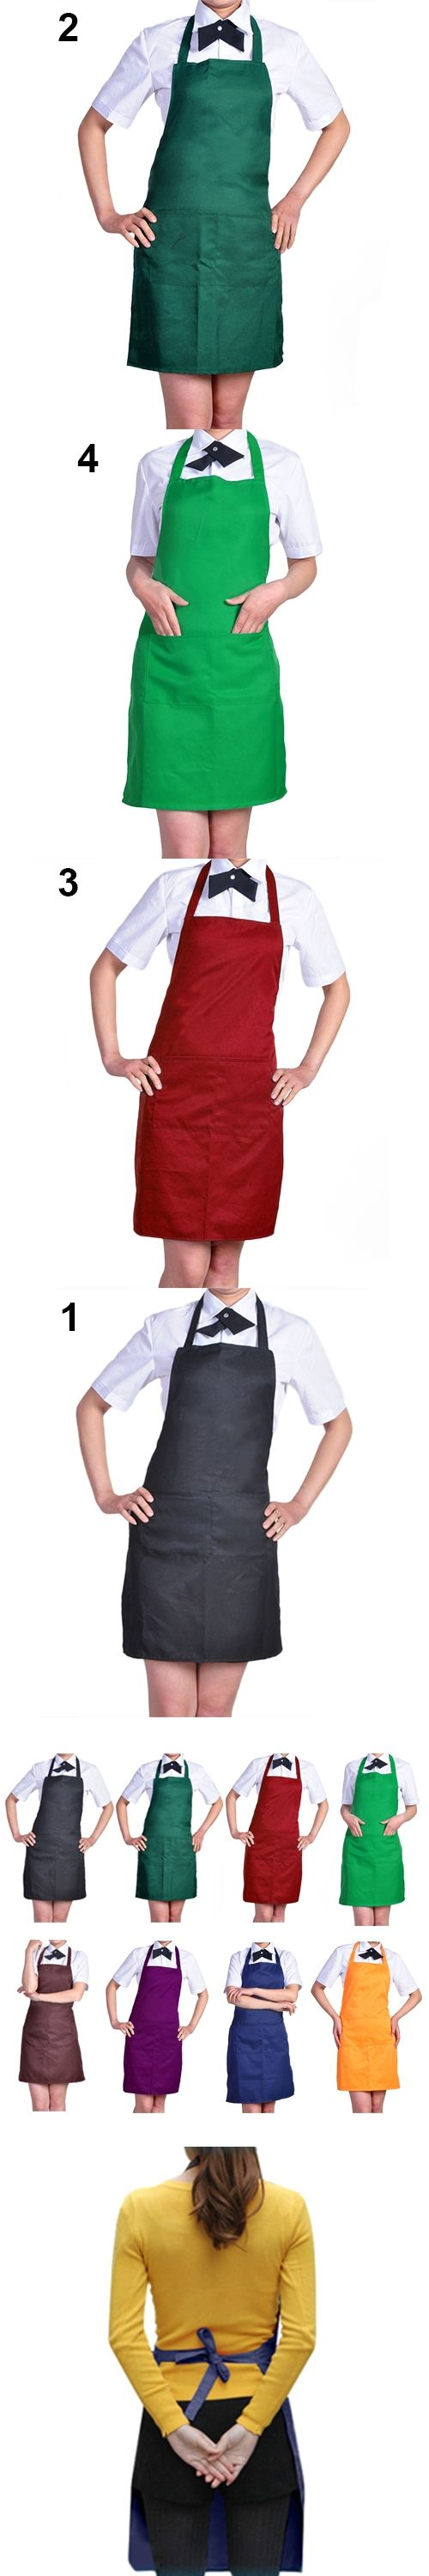 HOT Women's Fashion Easy to Clean Apron with Front Pocket for Chefs Butchers Retail/Wholesale  921E